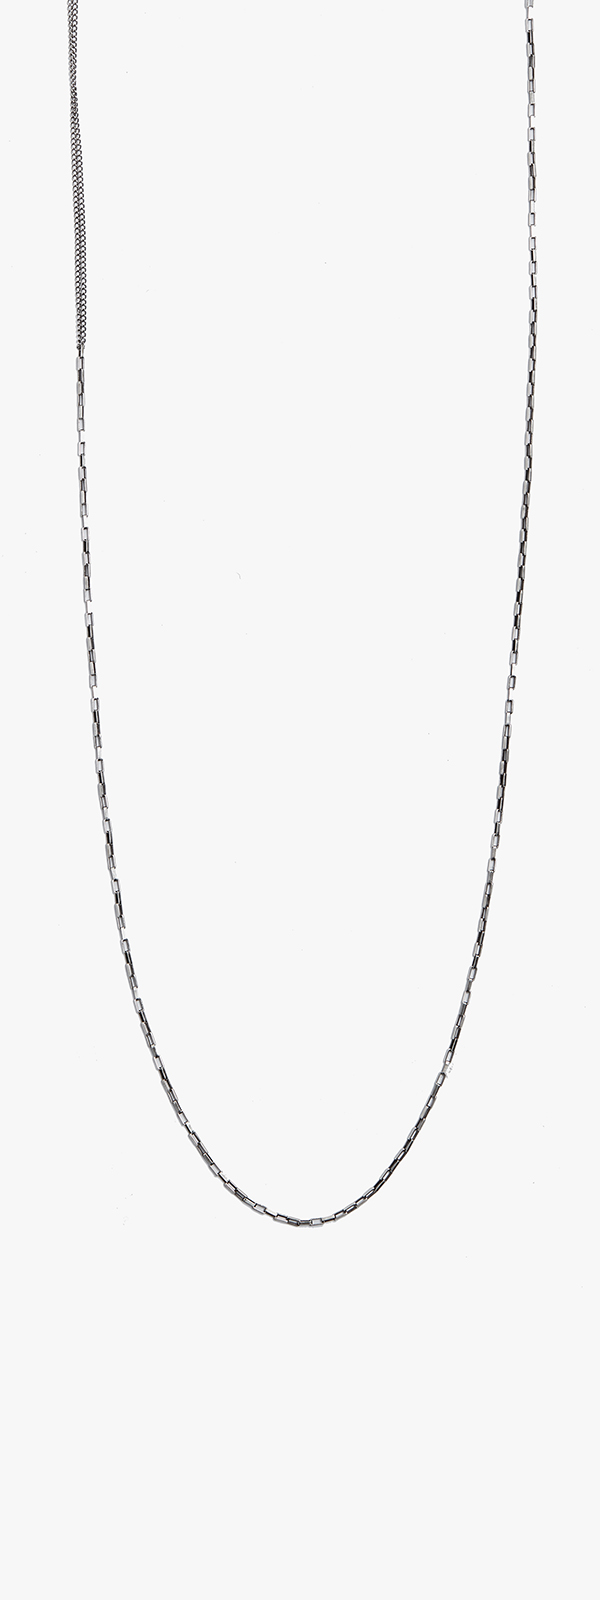 Image of Double Wrap Curb to Box Chain Necklace 057